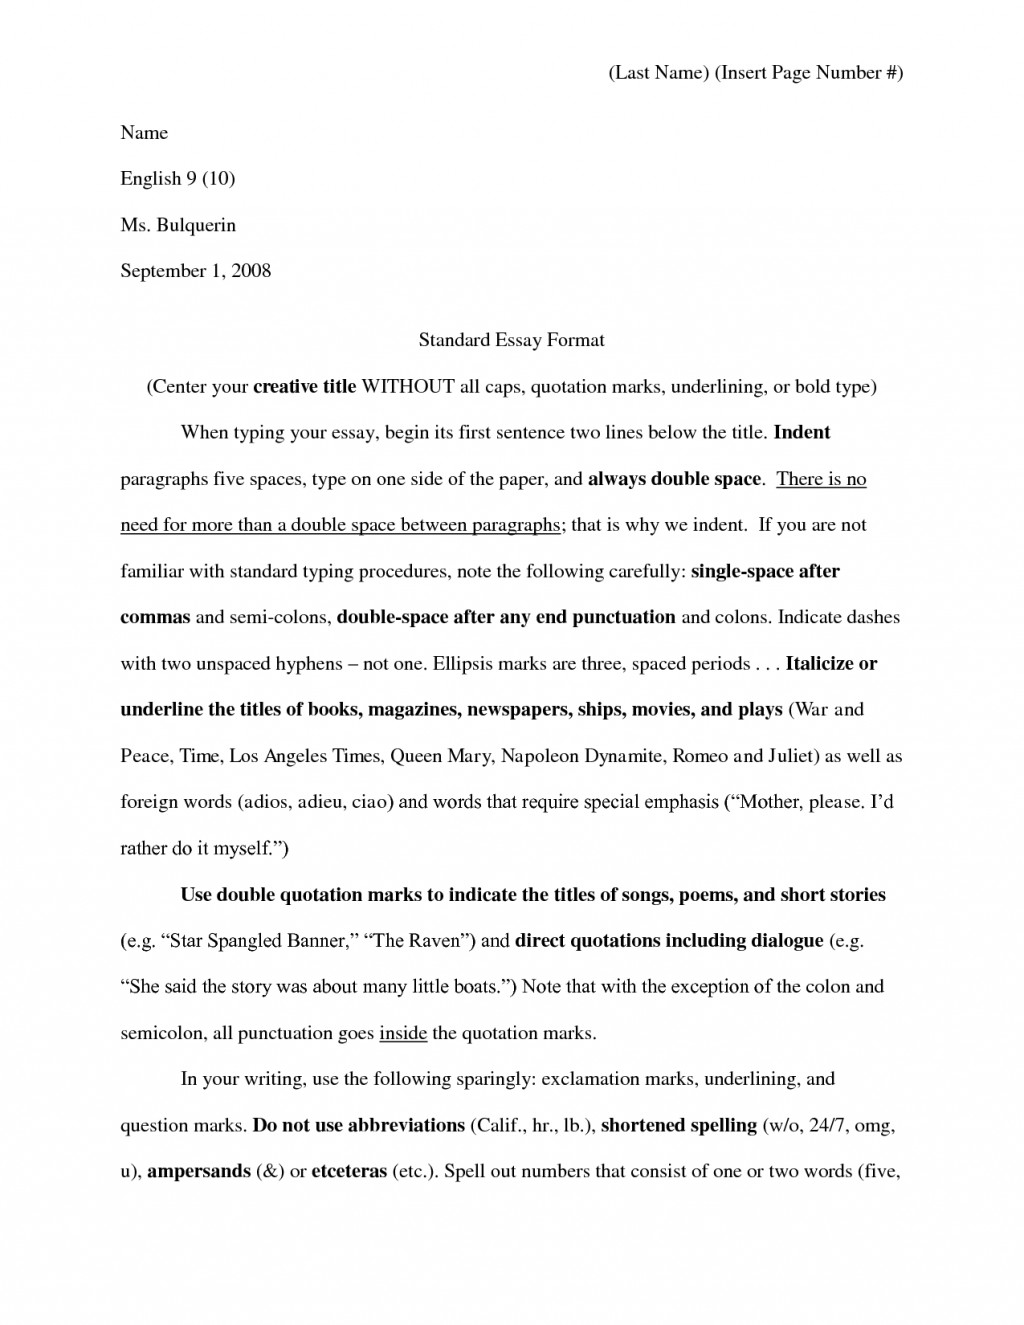 003 Proper Heading For An Essay Fascinating College Application Scholarship Large